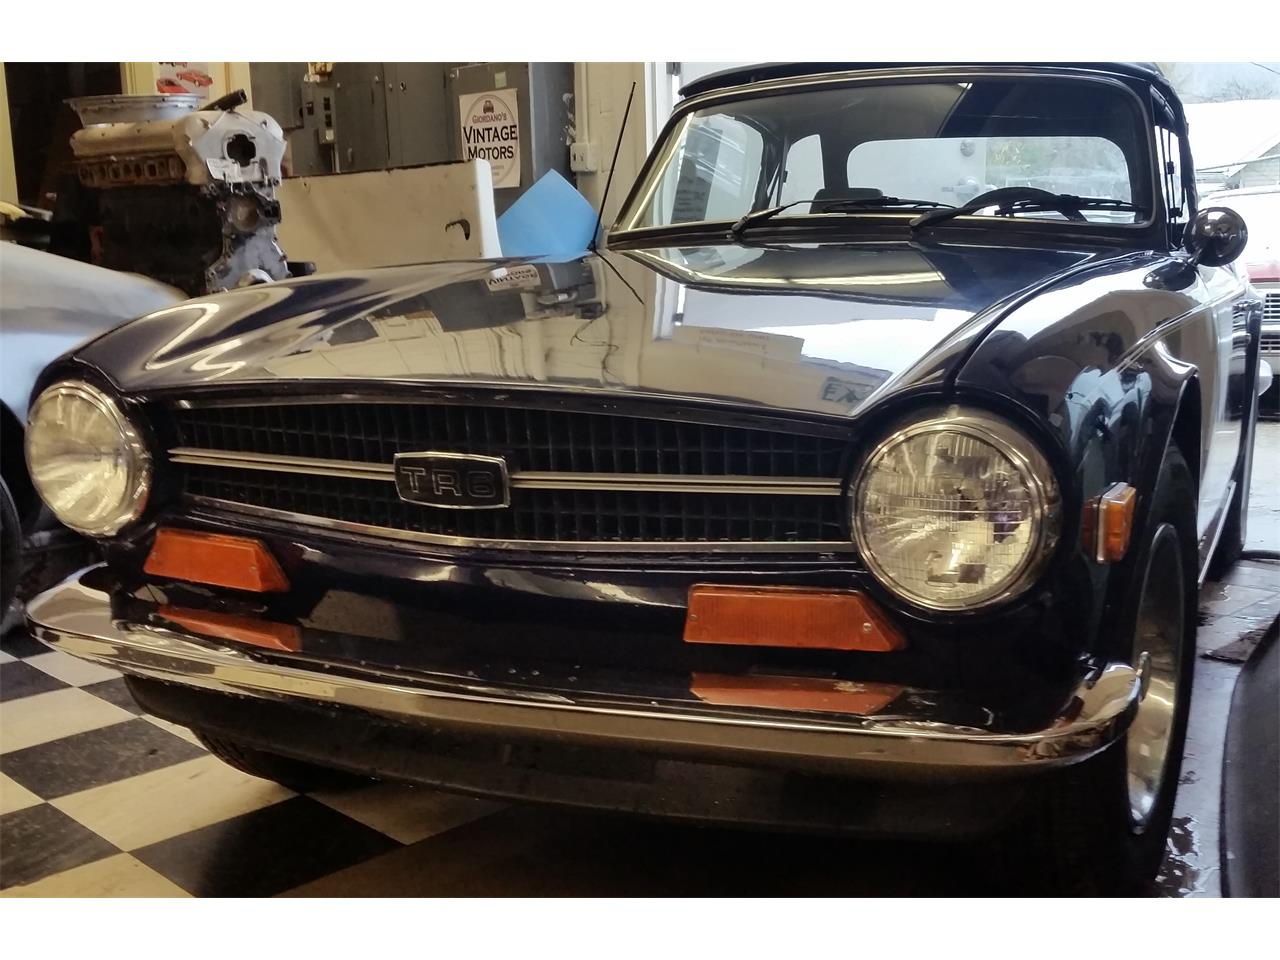 1973 Triumph TR6 for sale in Carnation, WA – photo 30